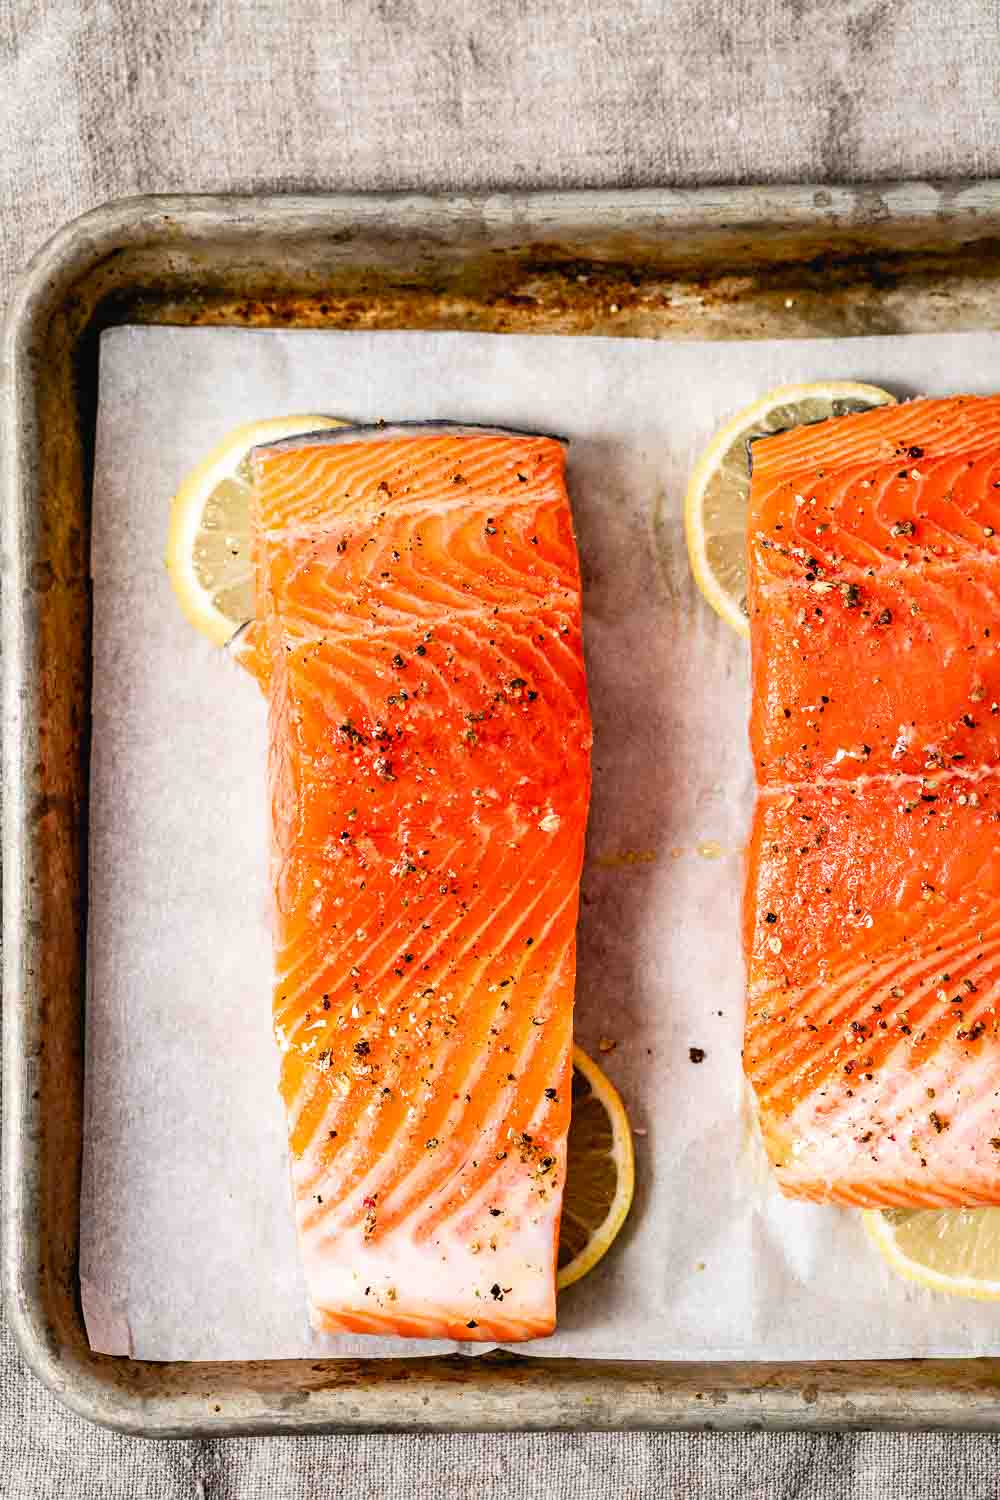 Learn how to cook salmon in the oven for a delicious salad recipe - fish photographed from the top view before it goes into the oven.